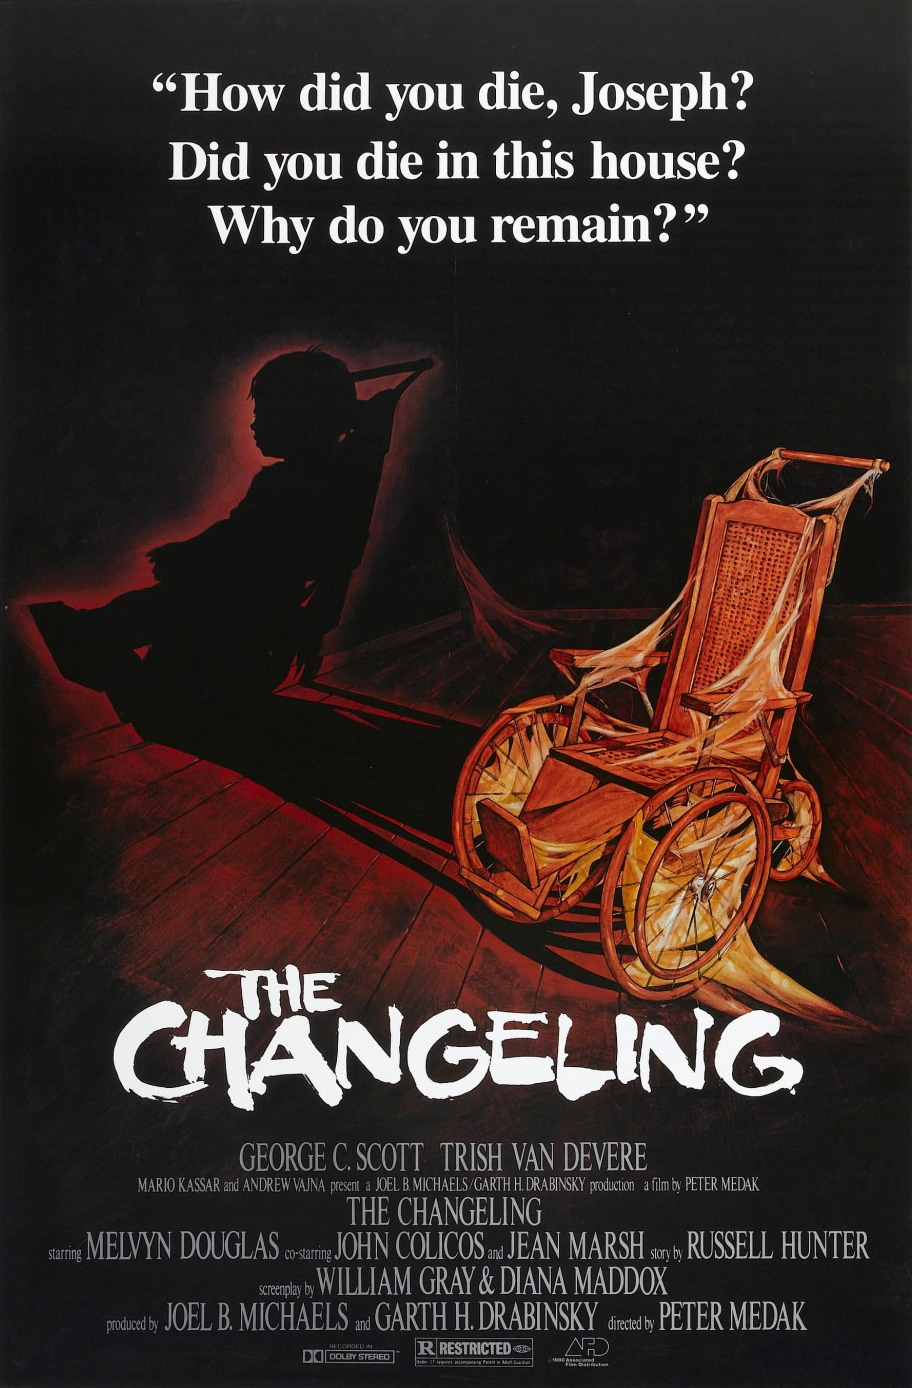 THE CHANGELING at 40: A Testament to the Haunting Nature of Grief and Finding Strength in Deviation